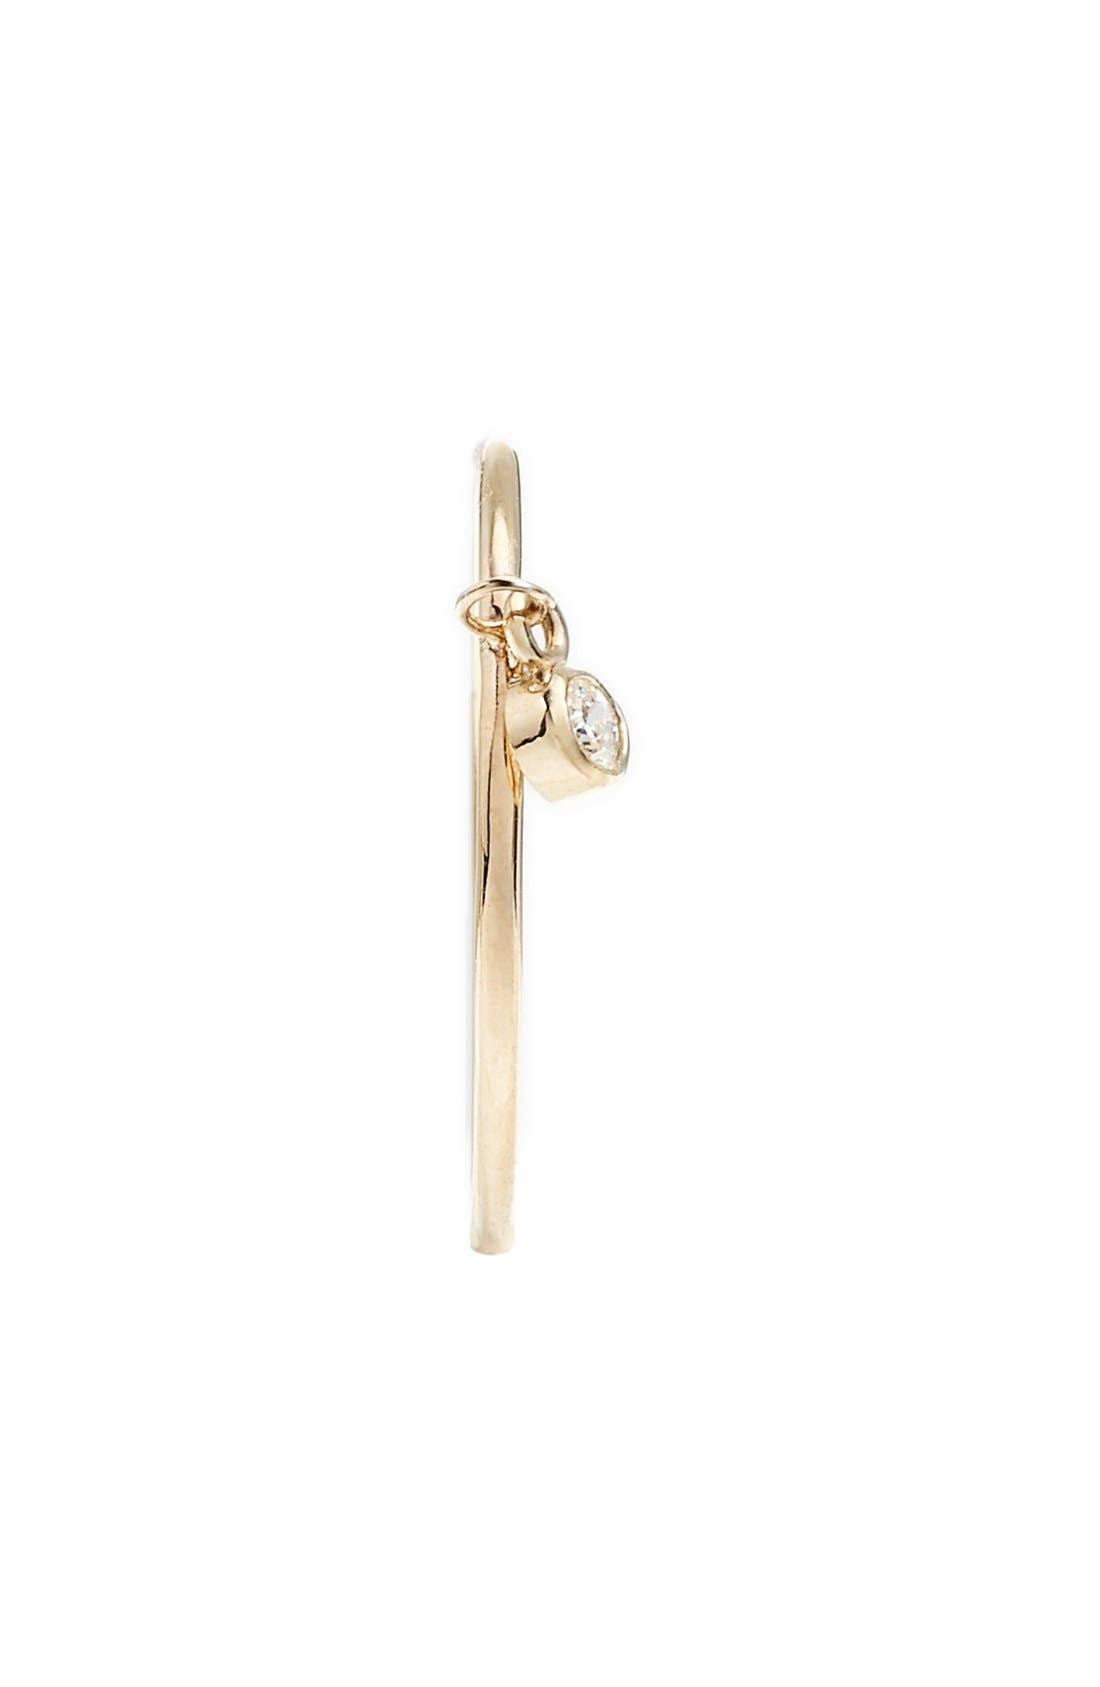 Dangling Diamond Ring,                             Alternate thumbnail 4, color,                             YELLOW GOLD